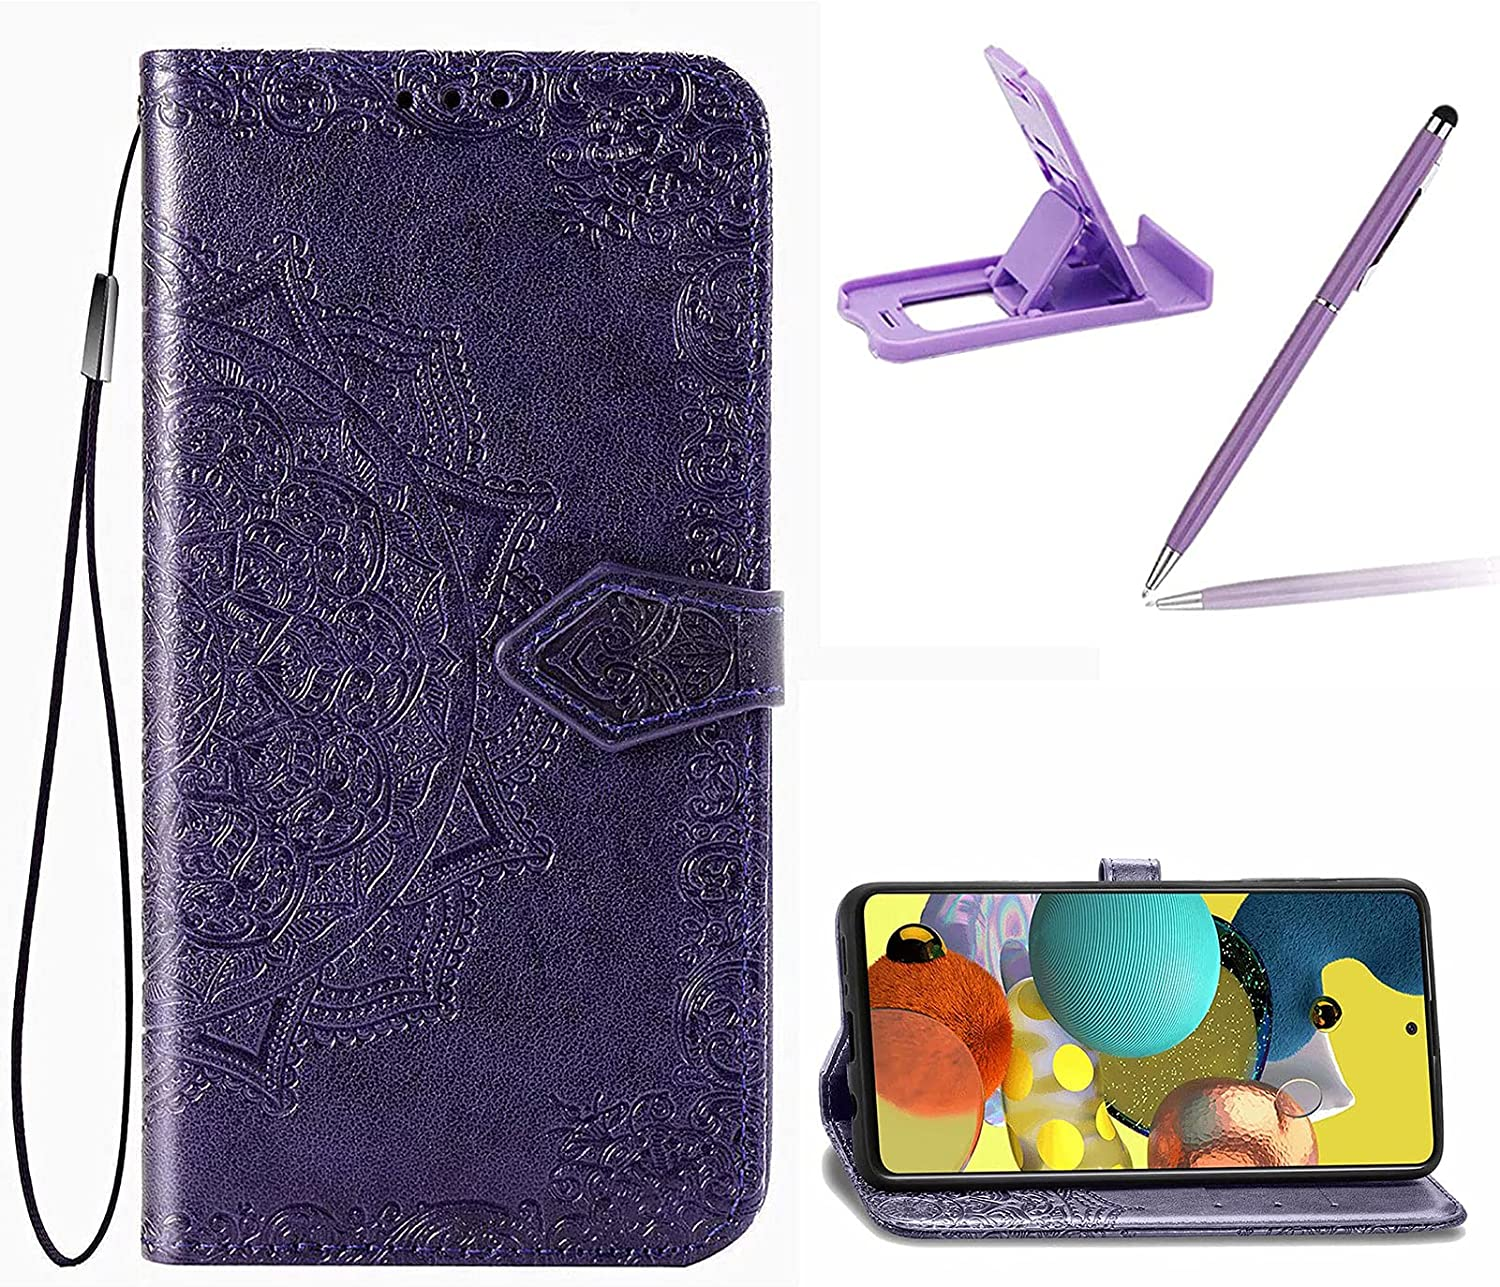 Strap Max 53% OFF Leather Case for LG 6 K71 Stylo Wallet Cover Fashion